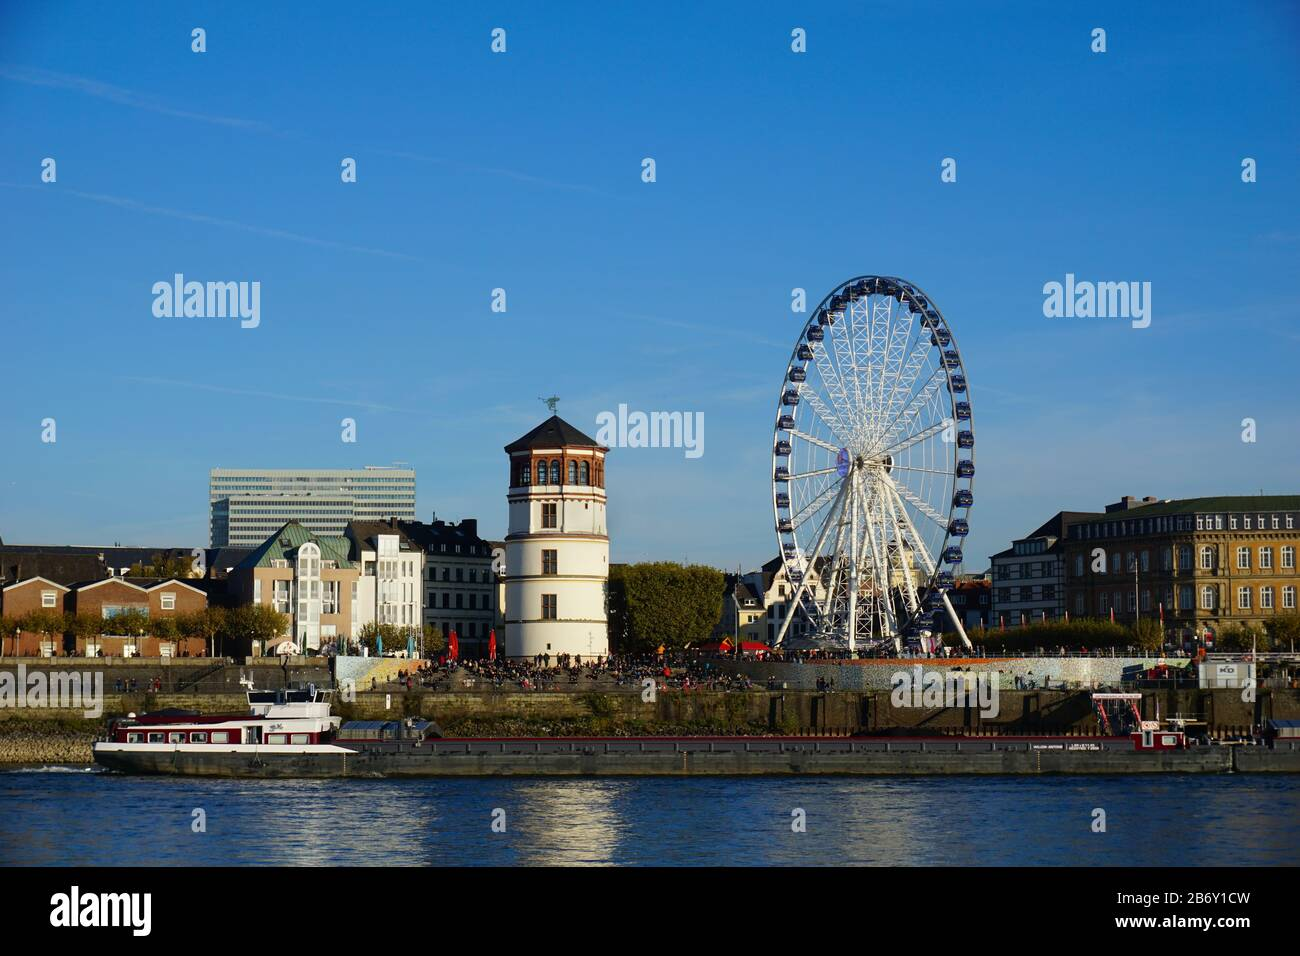 """View of """"Schlossturm"""" (castle tower) and Ferris Wheel across Rhine River. The castle tower once belonged to a castle that was destroyed in 1872. Stock Photo"""